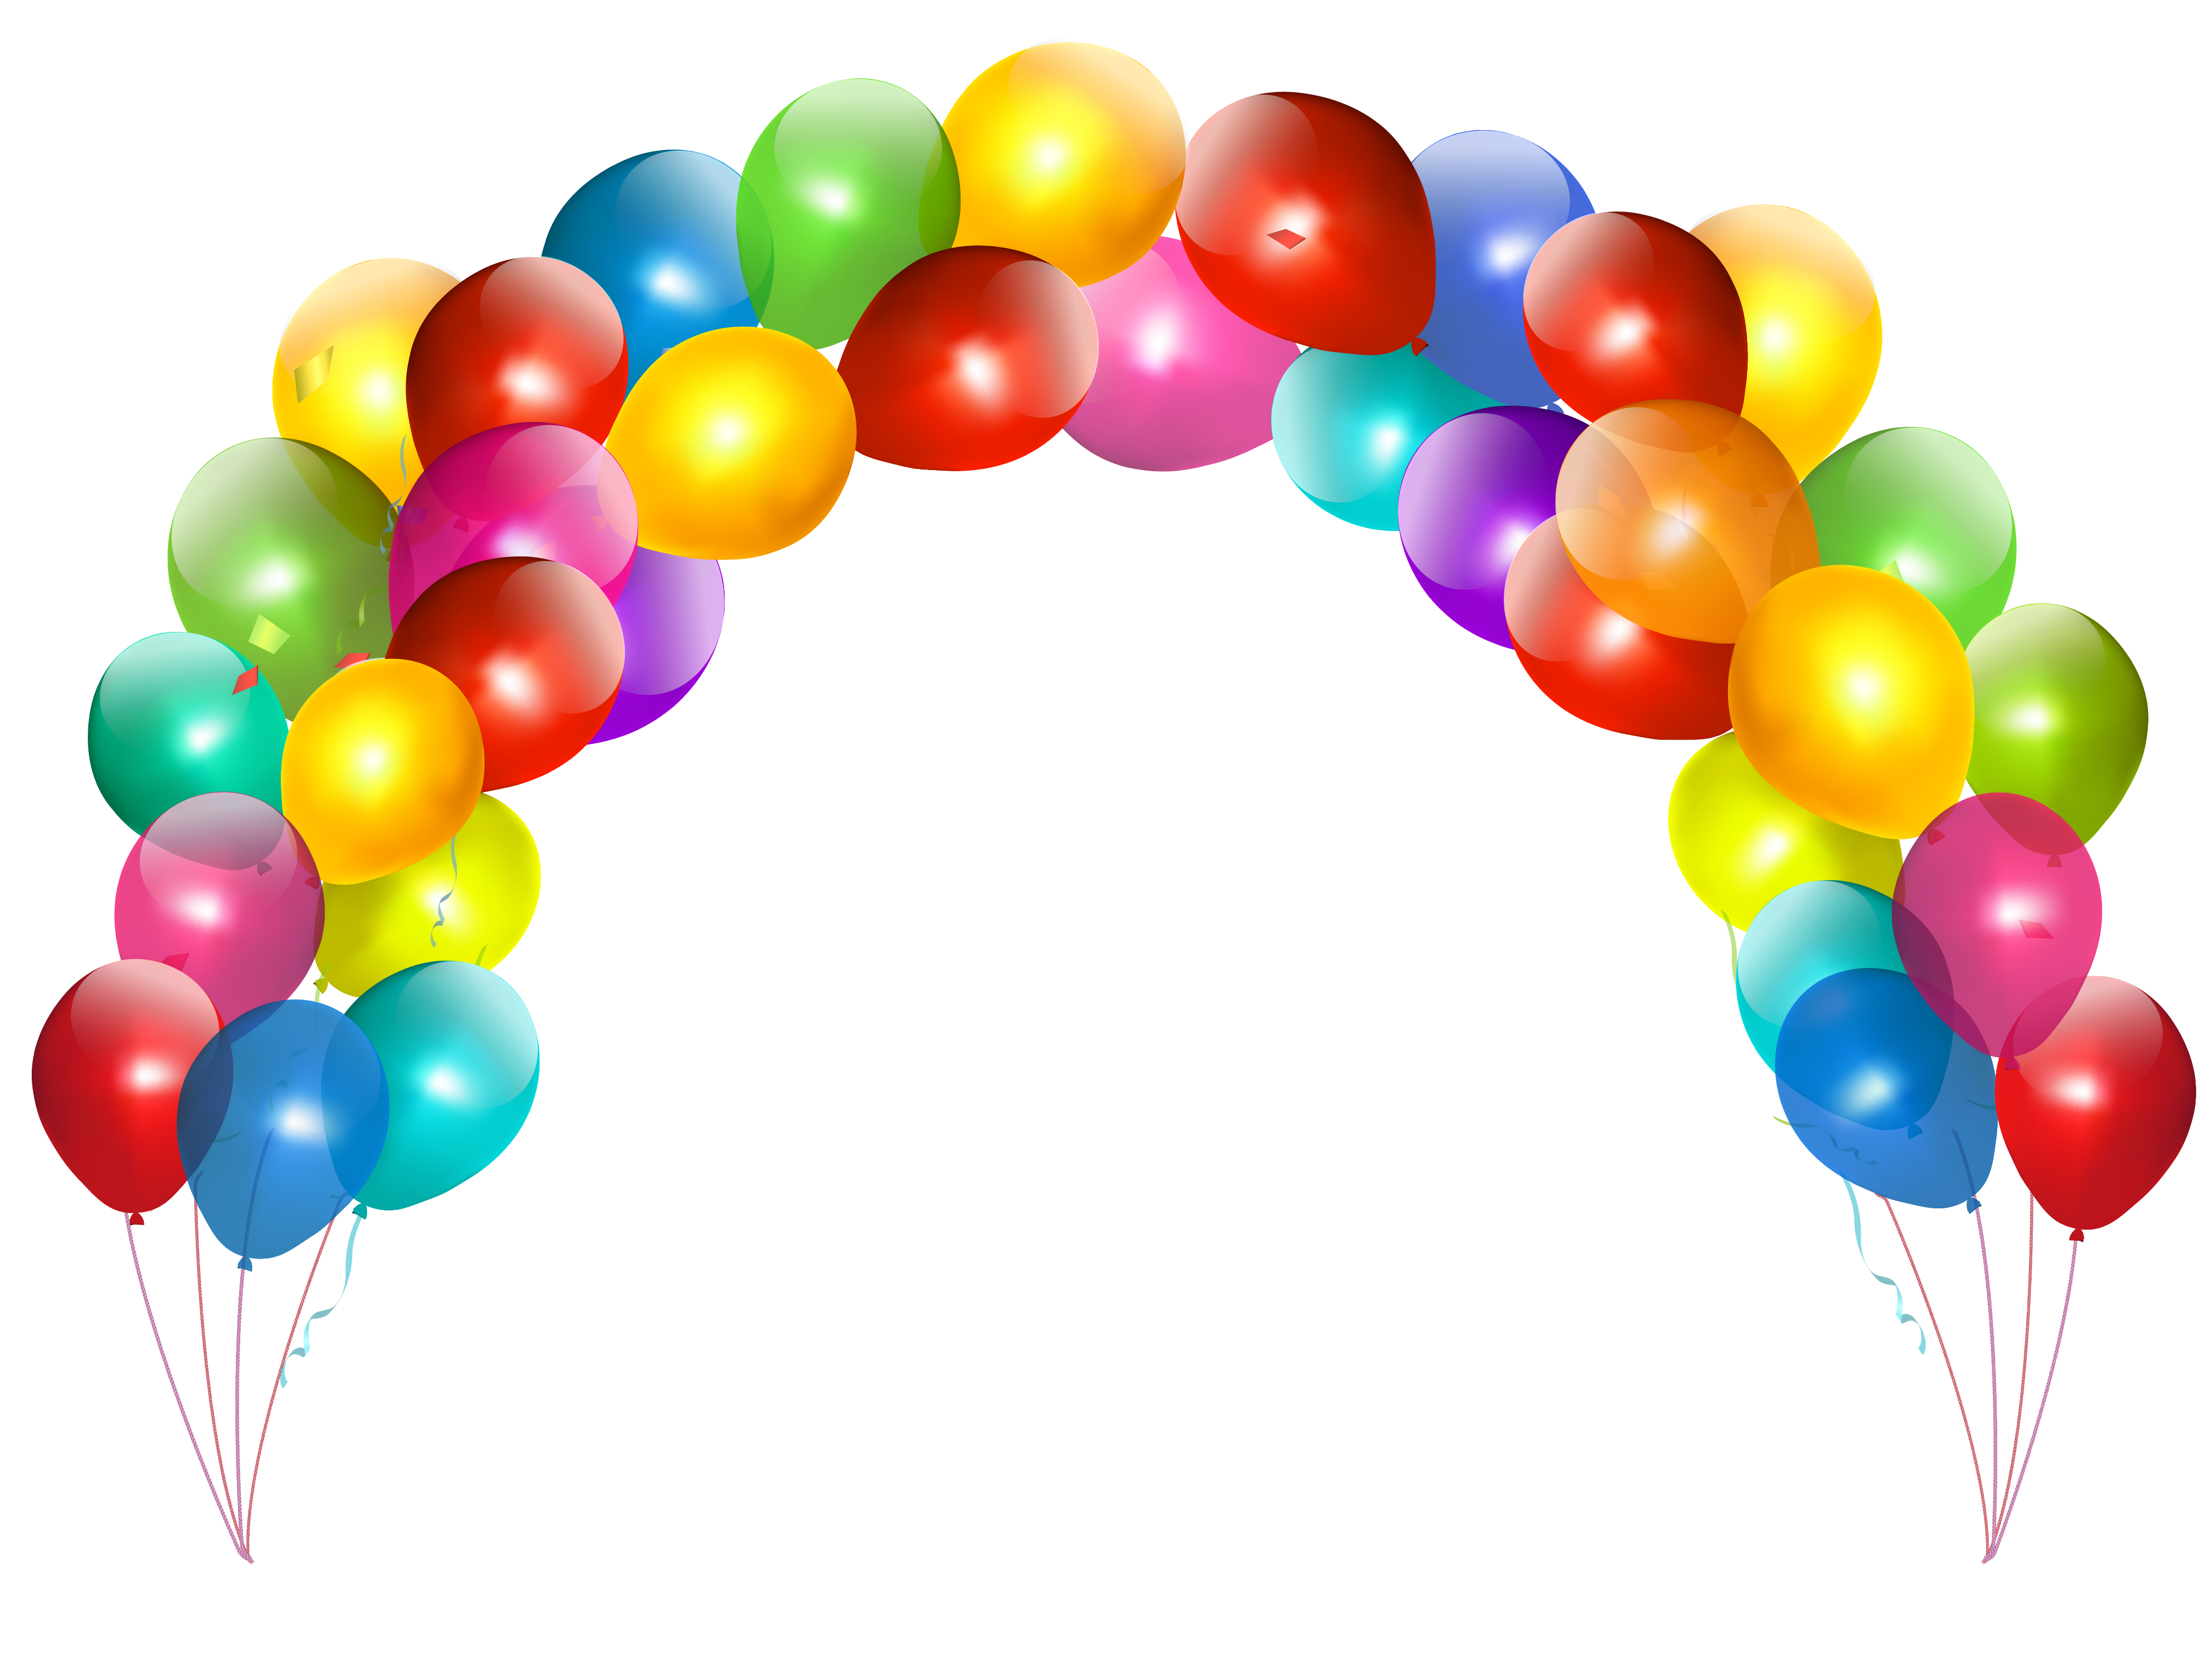 4182x3158 Balloon Arch PNG Pictureu200b Gallery Yopriceville